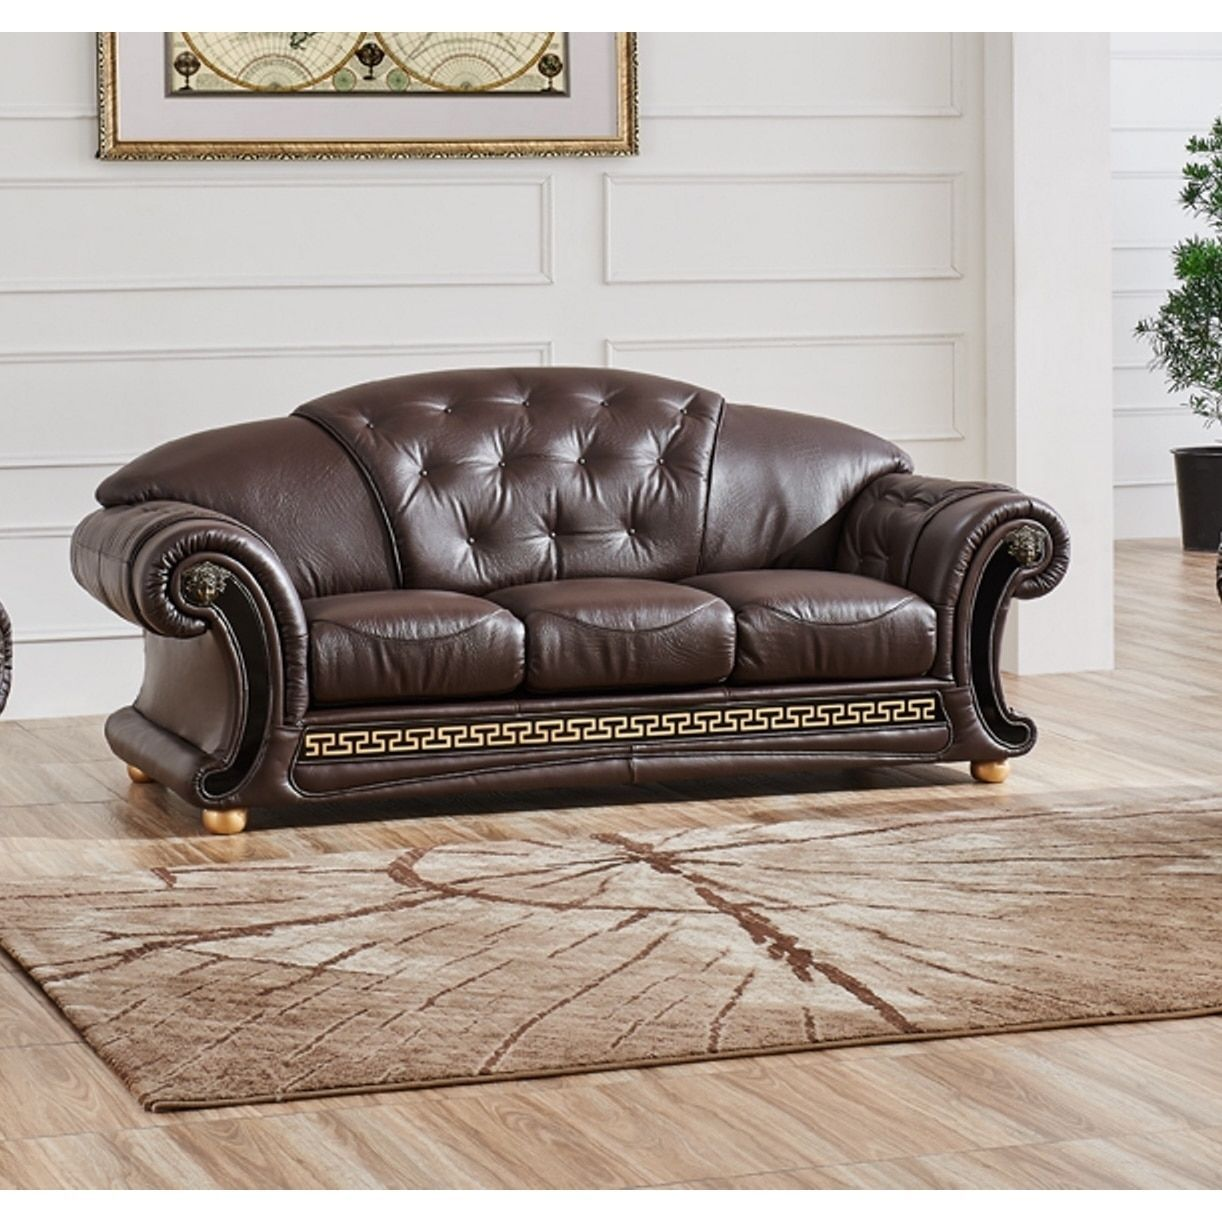 Luca Home Split Leather Sofa Bed